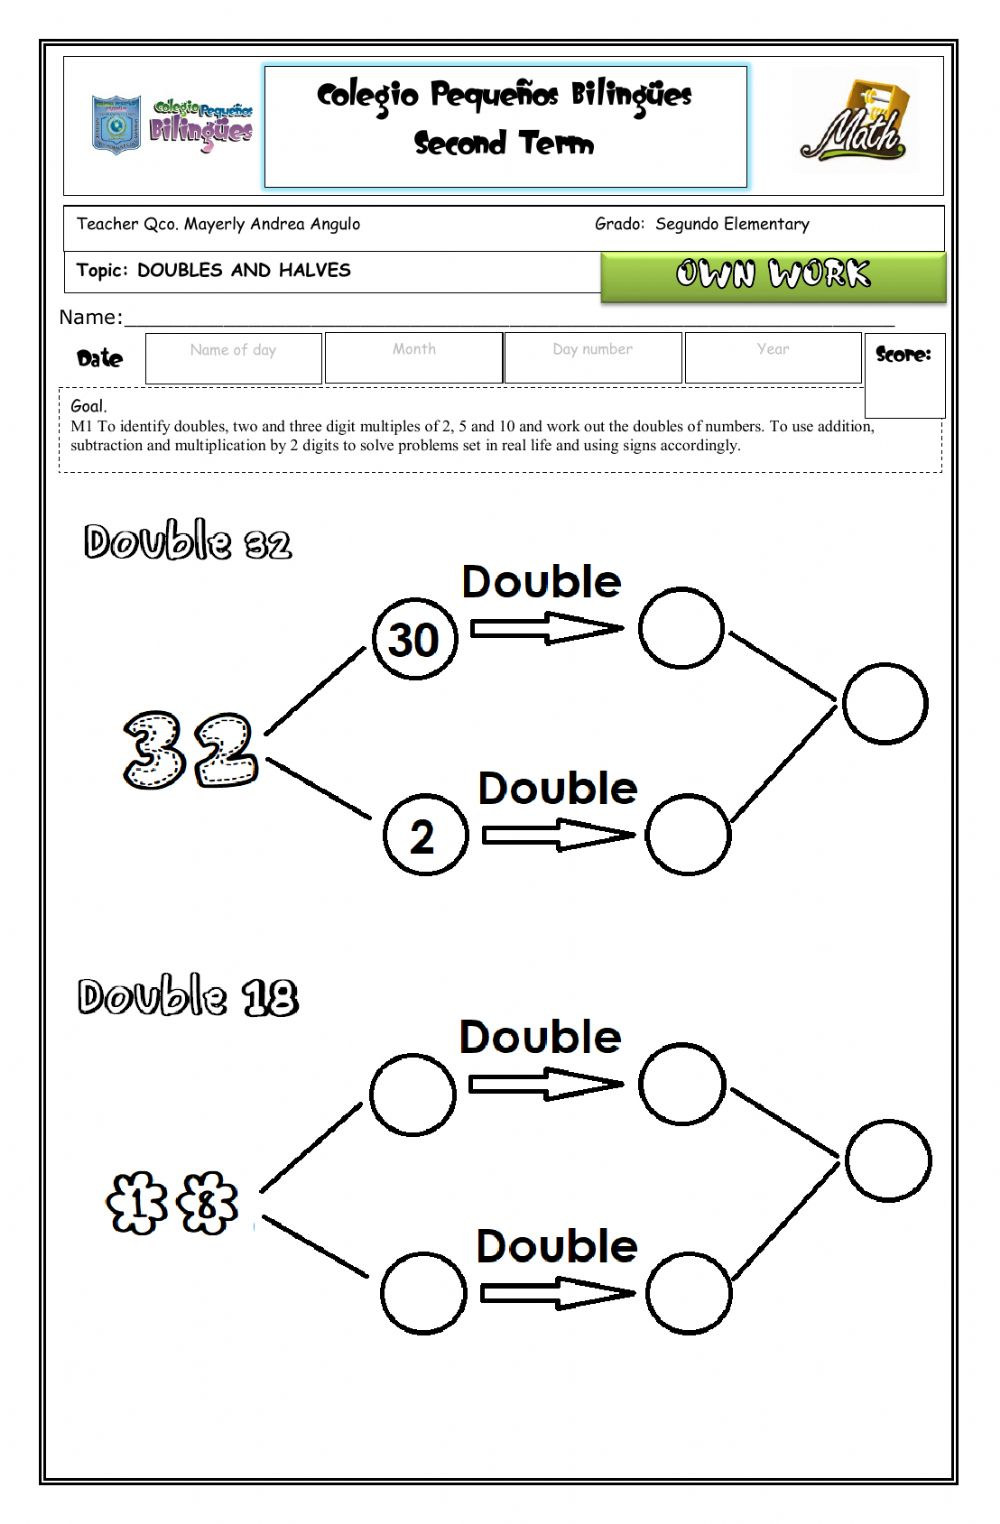 medium resolution of Own work- doubles and halves worksheet